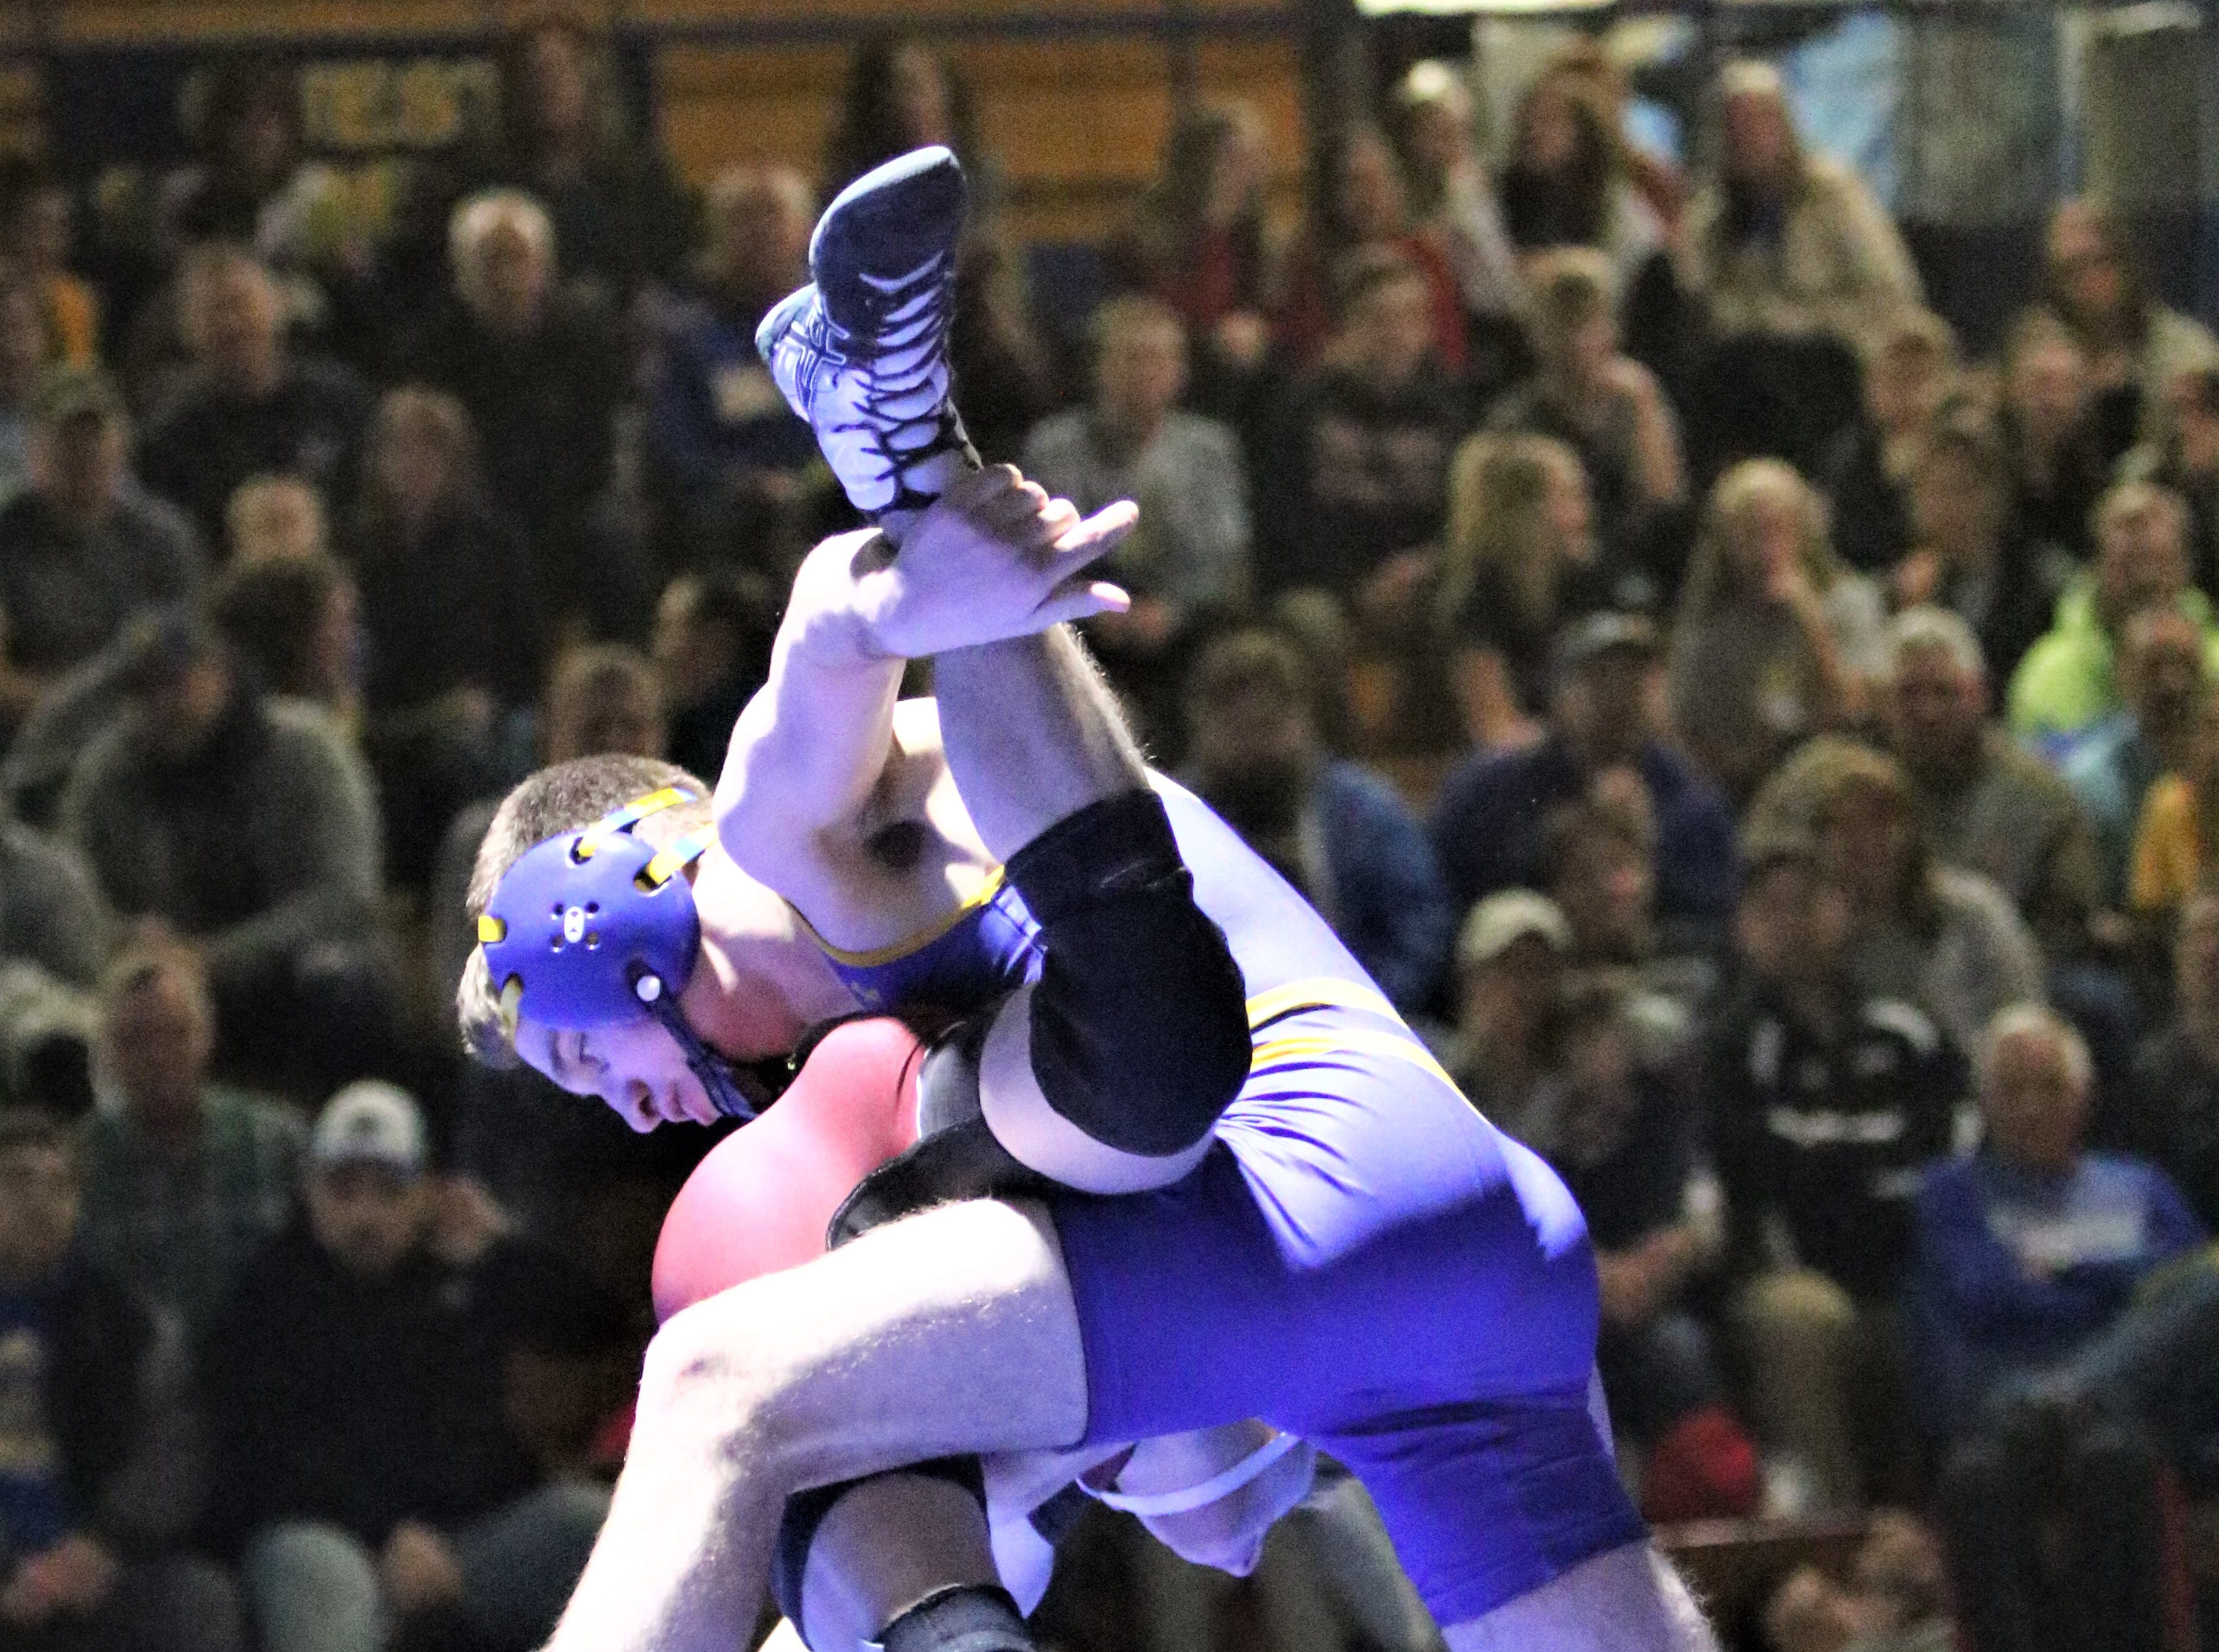 Mukwonago's Jake Wisinski takes down Wauwatosa's Elliott Tait during a match in a WIAA sectional final on Feb. 13, 2019.